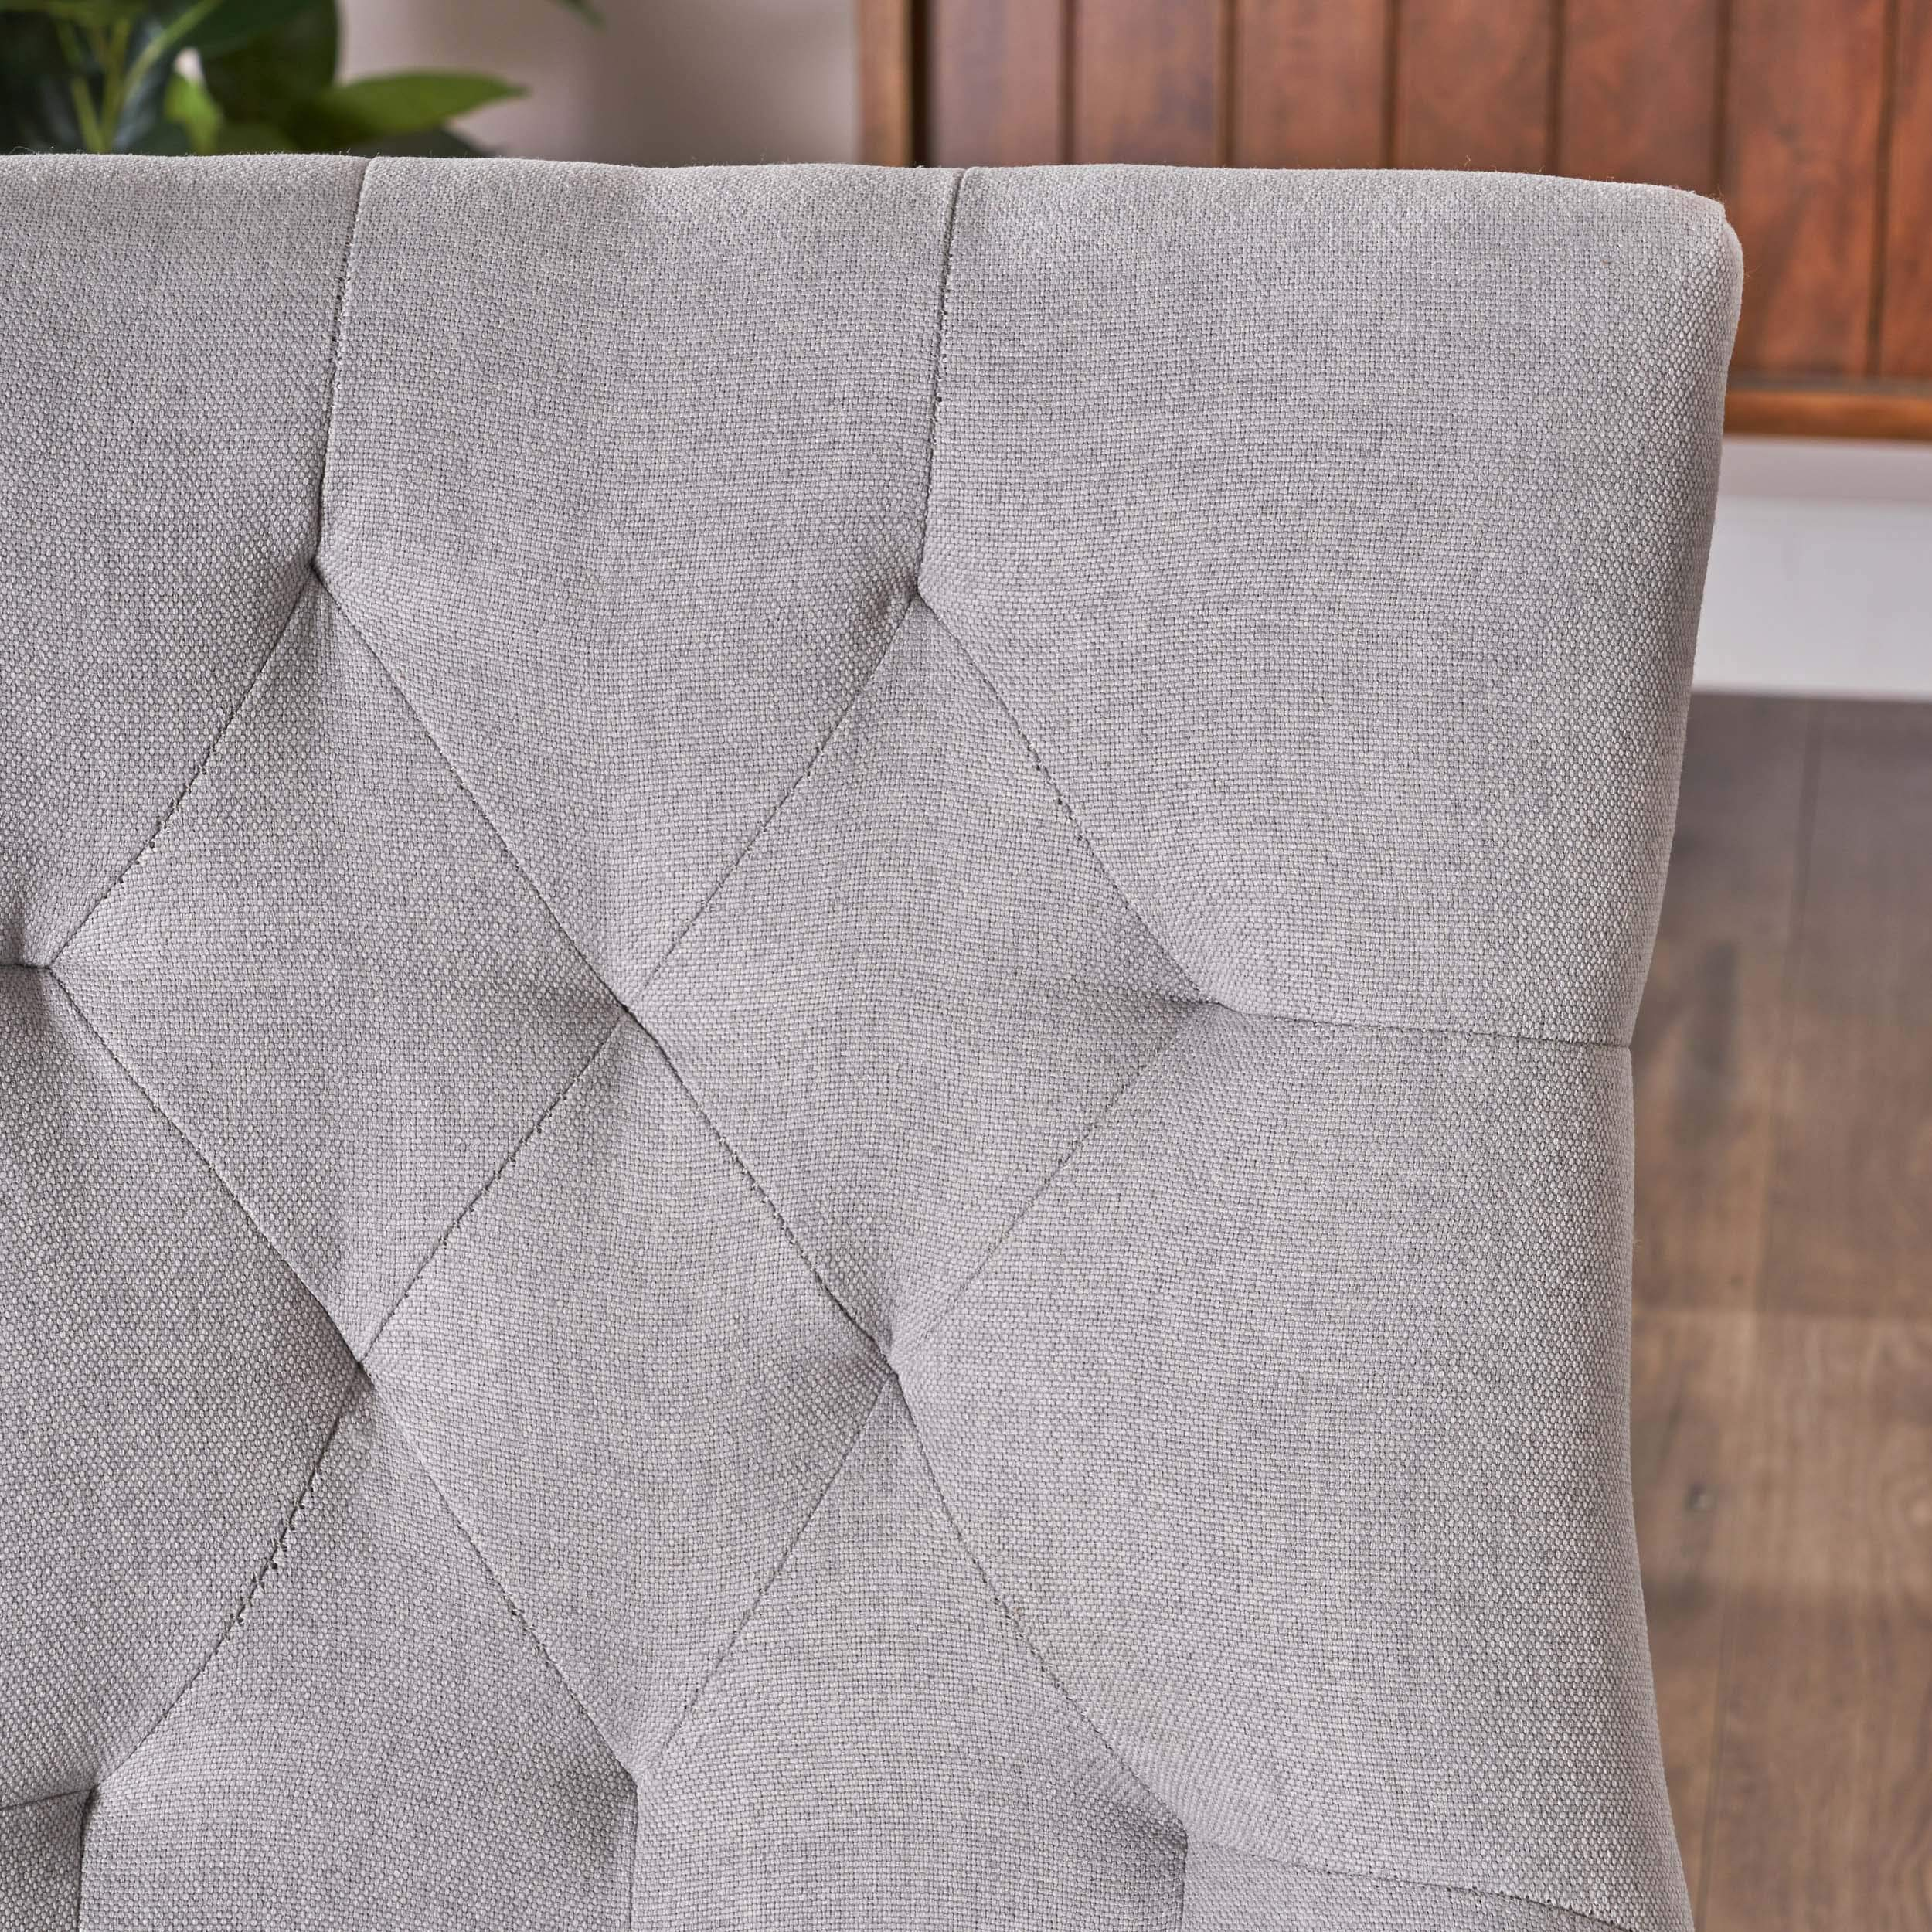 Christopher Knight Home 299538 Hayden Fabric Dining Chairs (Set of 2), Light Gray by Christopher Knight Home (Image #6)